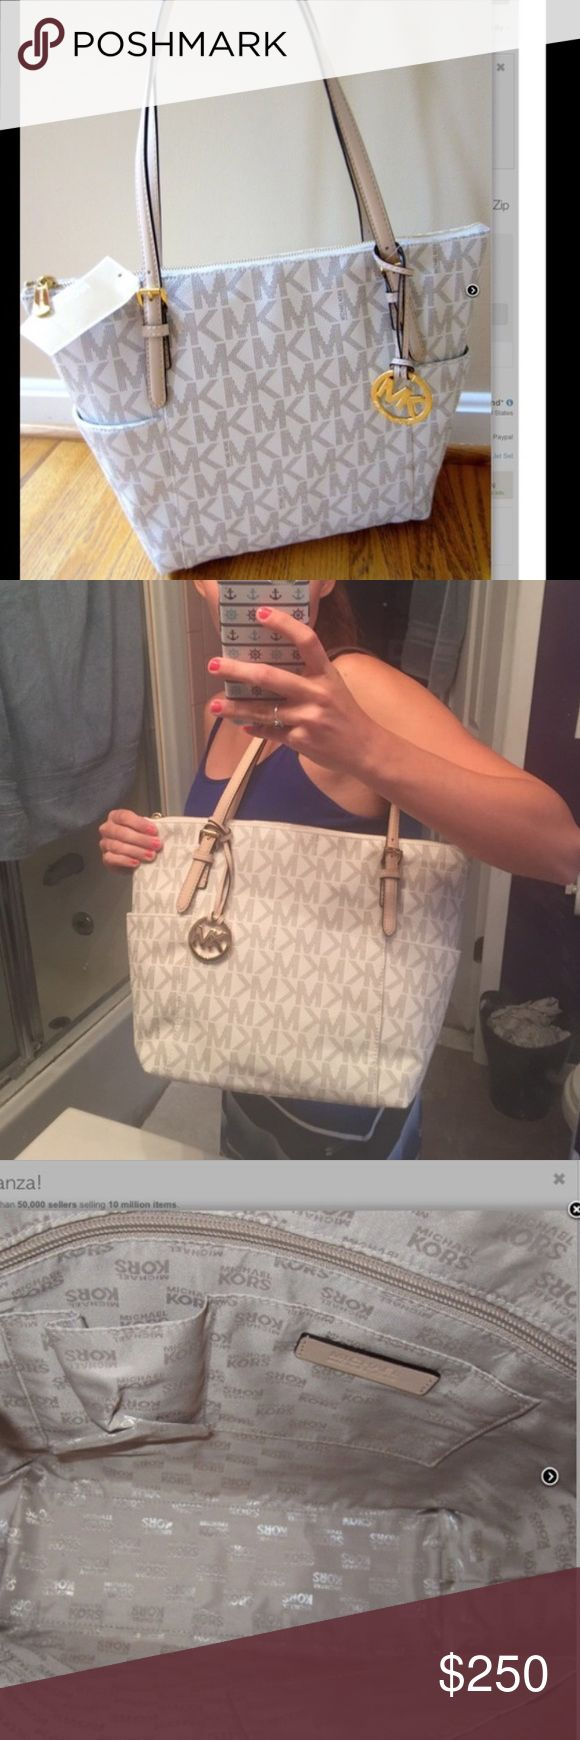 Michael kors jetset vanilla large tote nwt Brand new white jetset tote. Has straps and gold hardware and zippers shut. Inside compartments as well. Very roomy and can hold a lot! No trades please. New with tags Michael Kors Bags Shoulder Bags